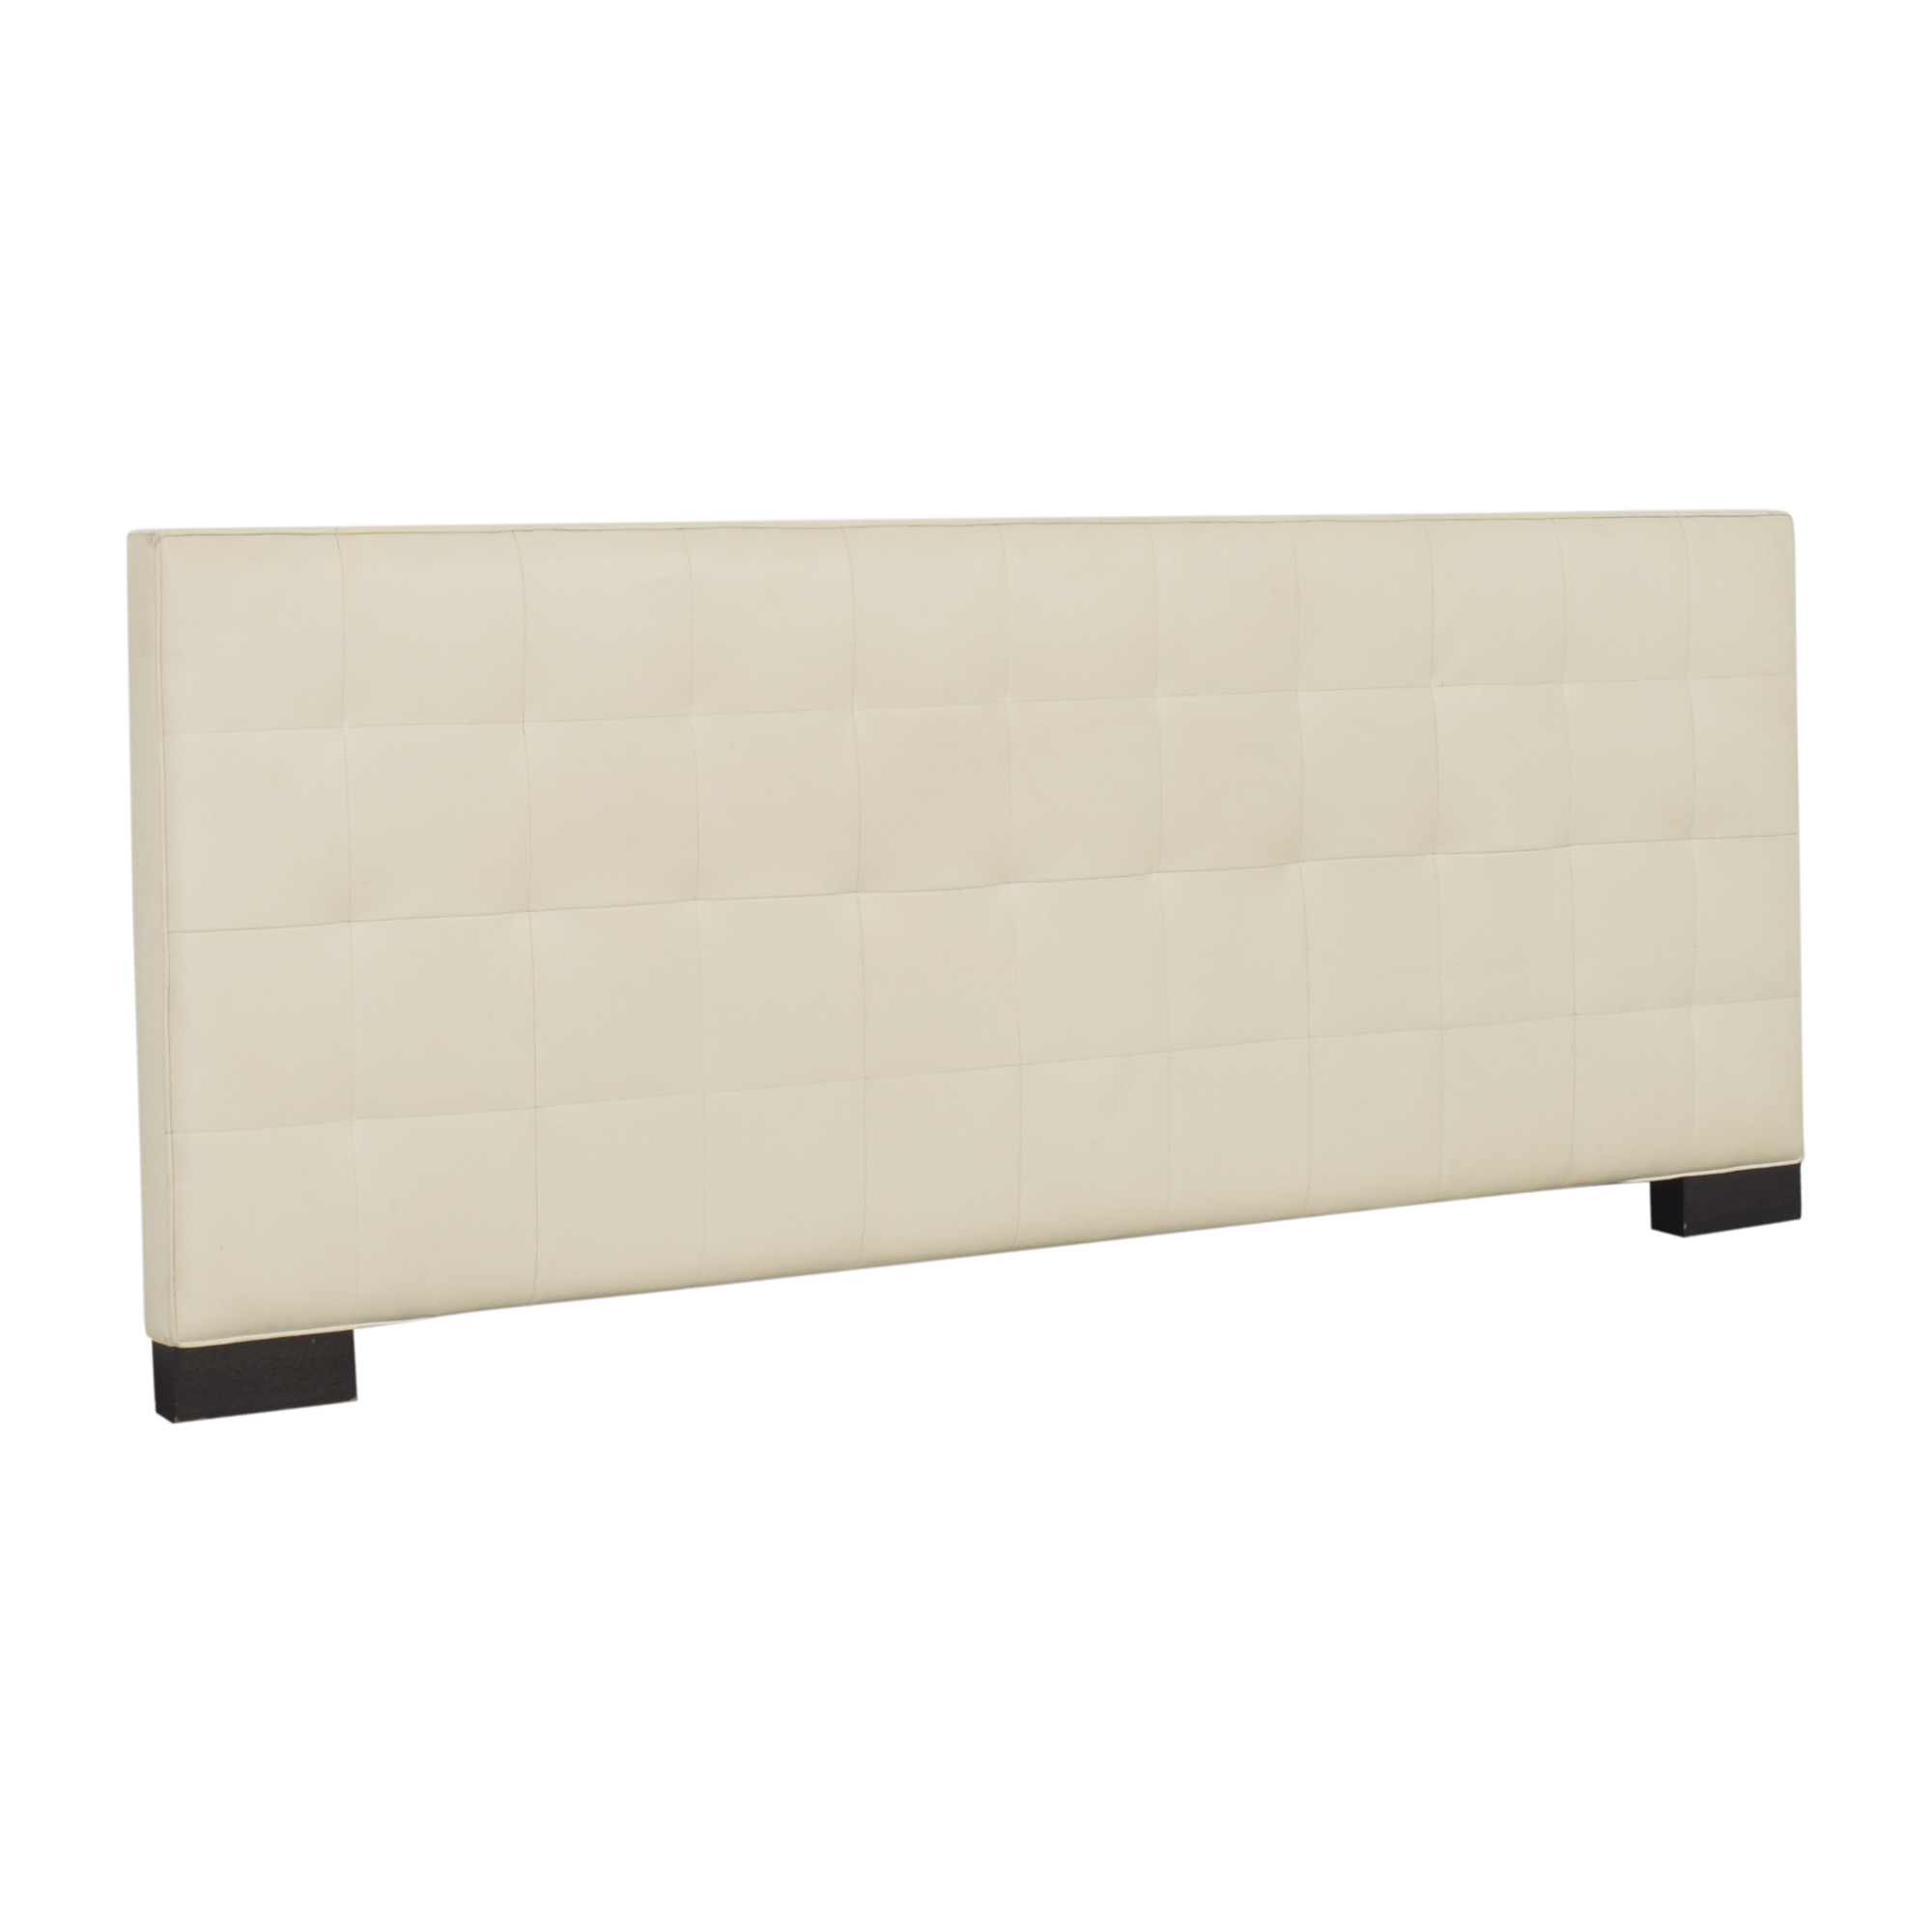 Ligne Roset Ligne Roset Nador Low King Headboard